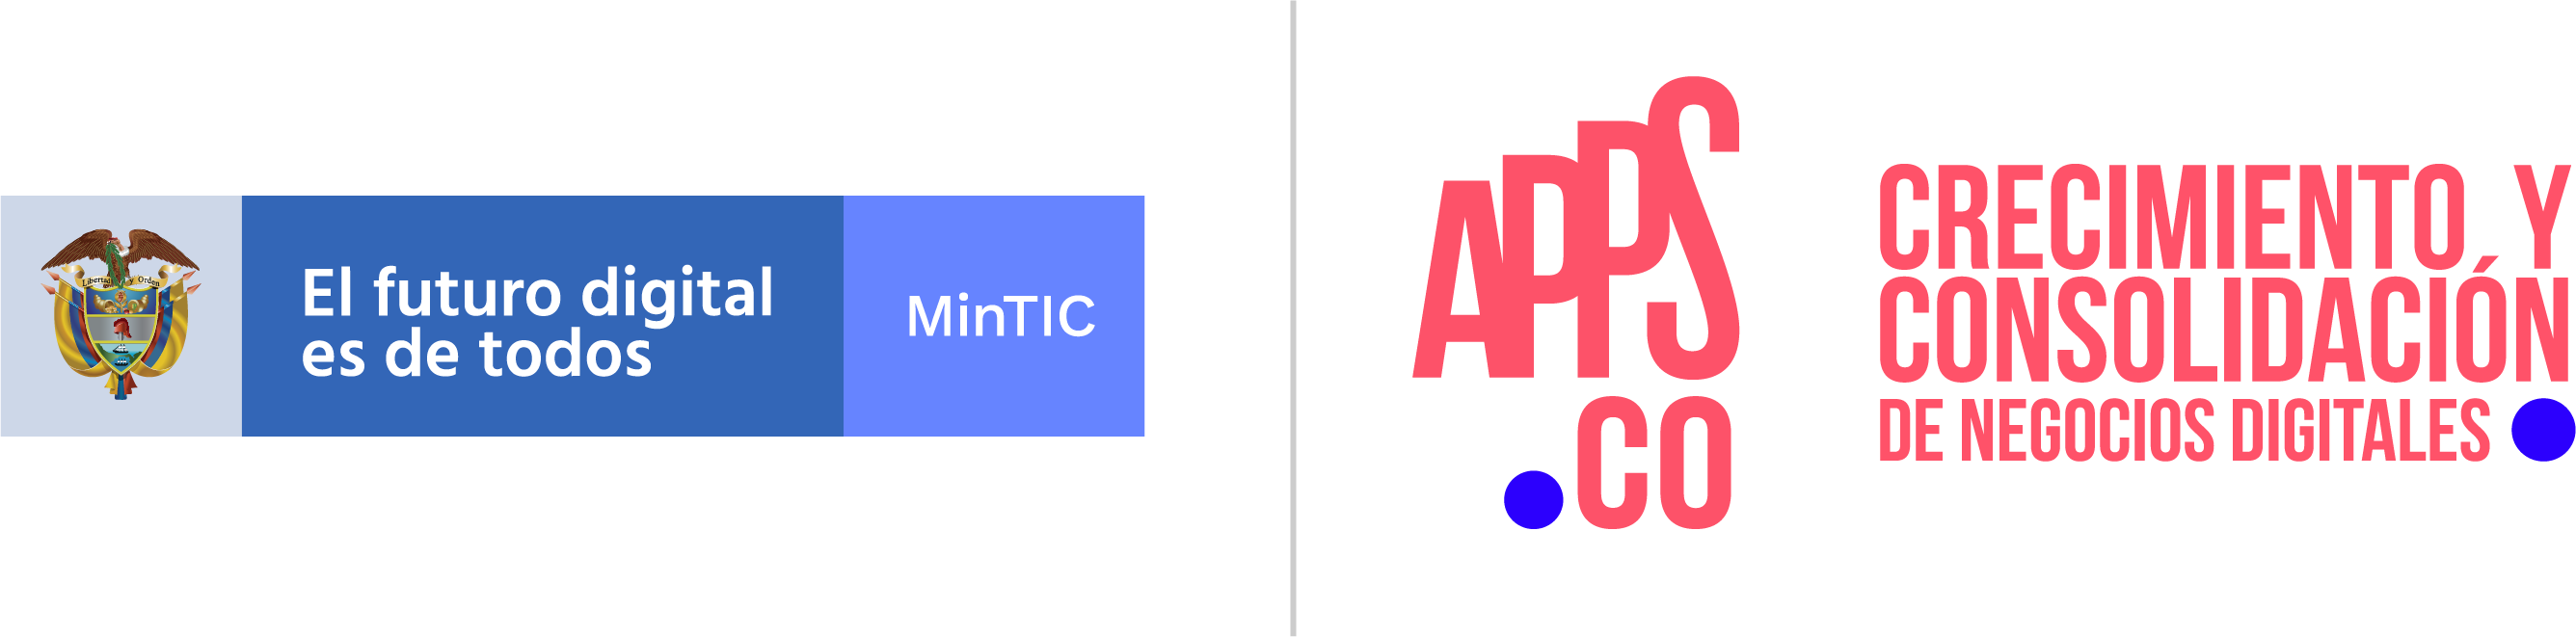 MinTic y APPS.co